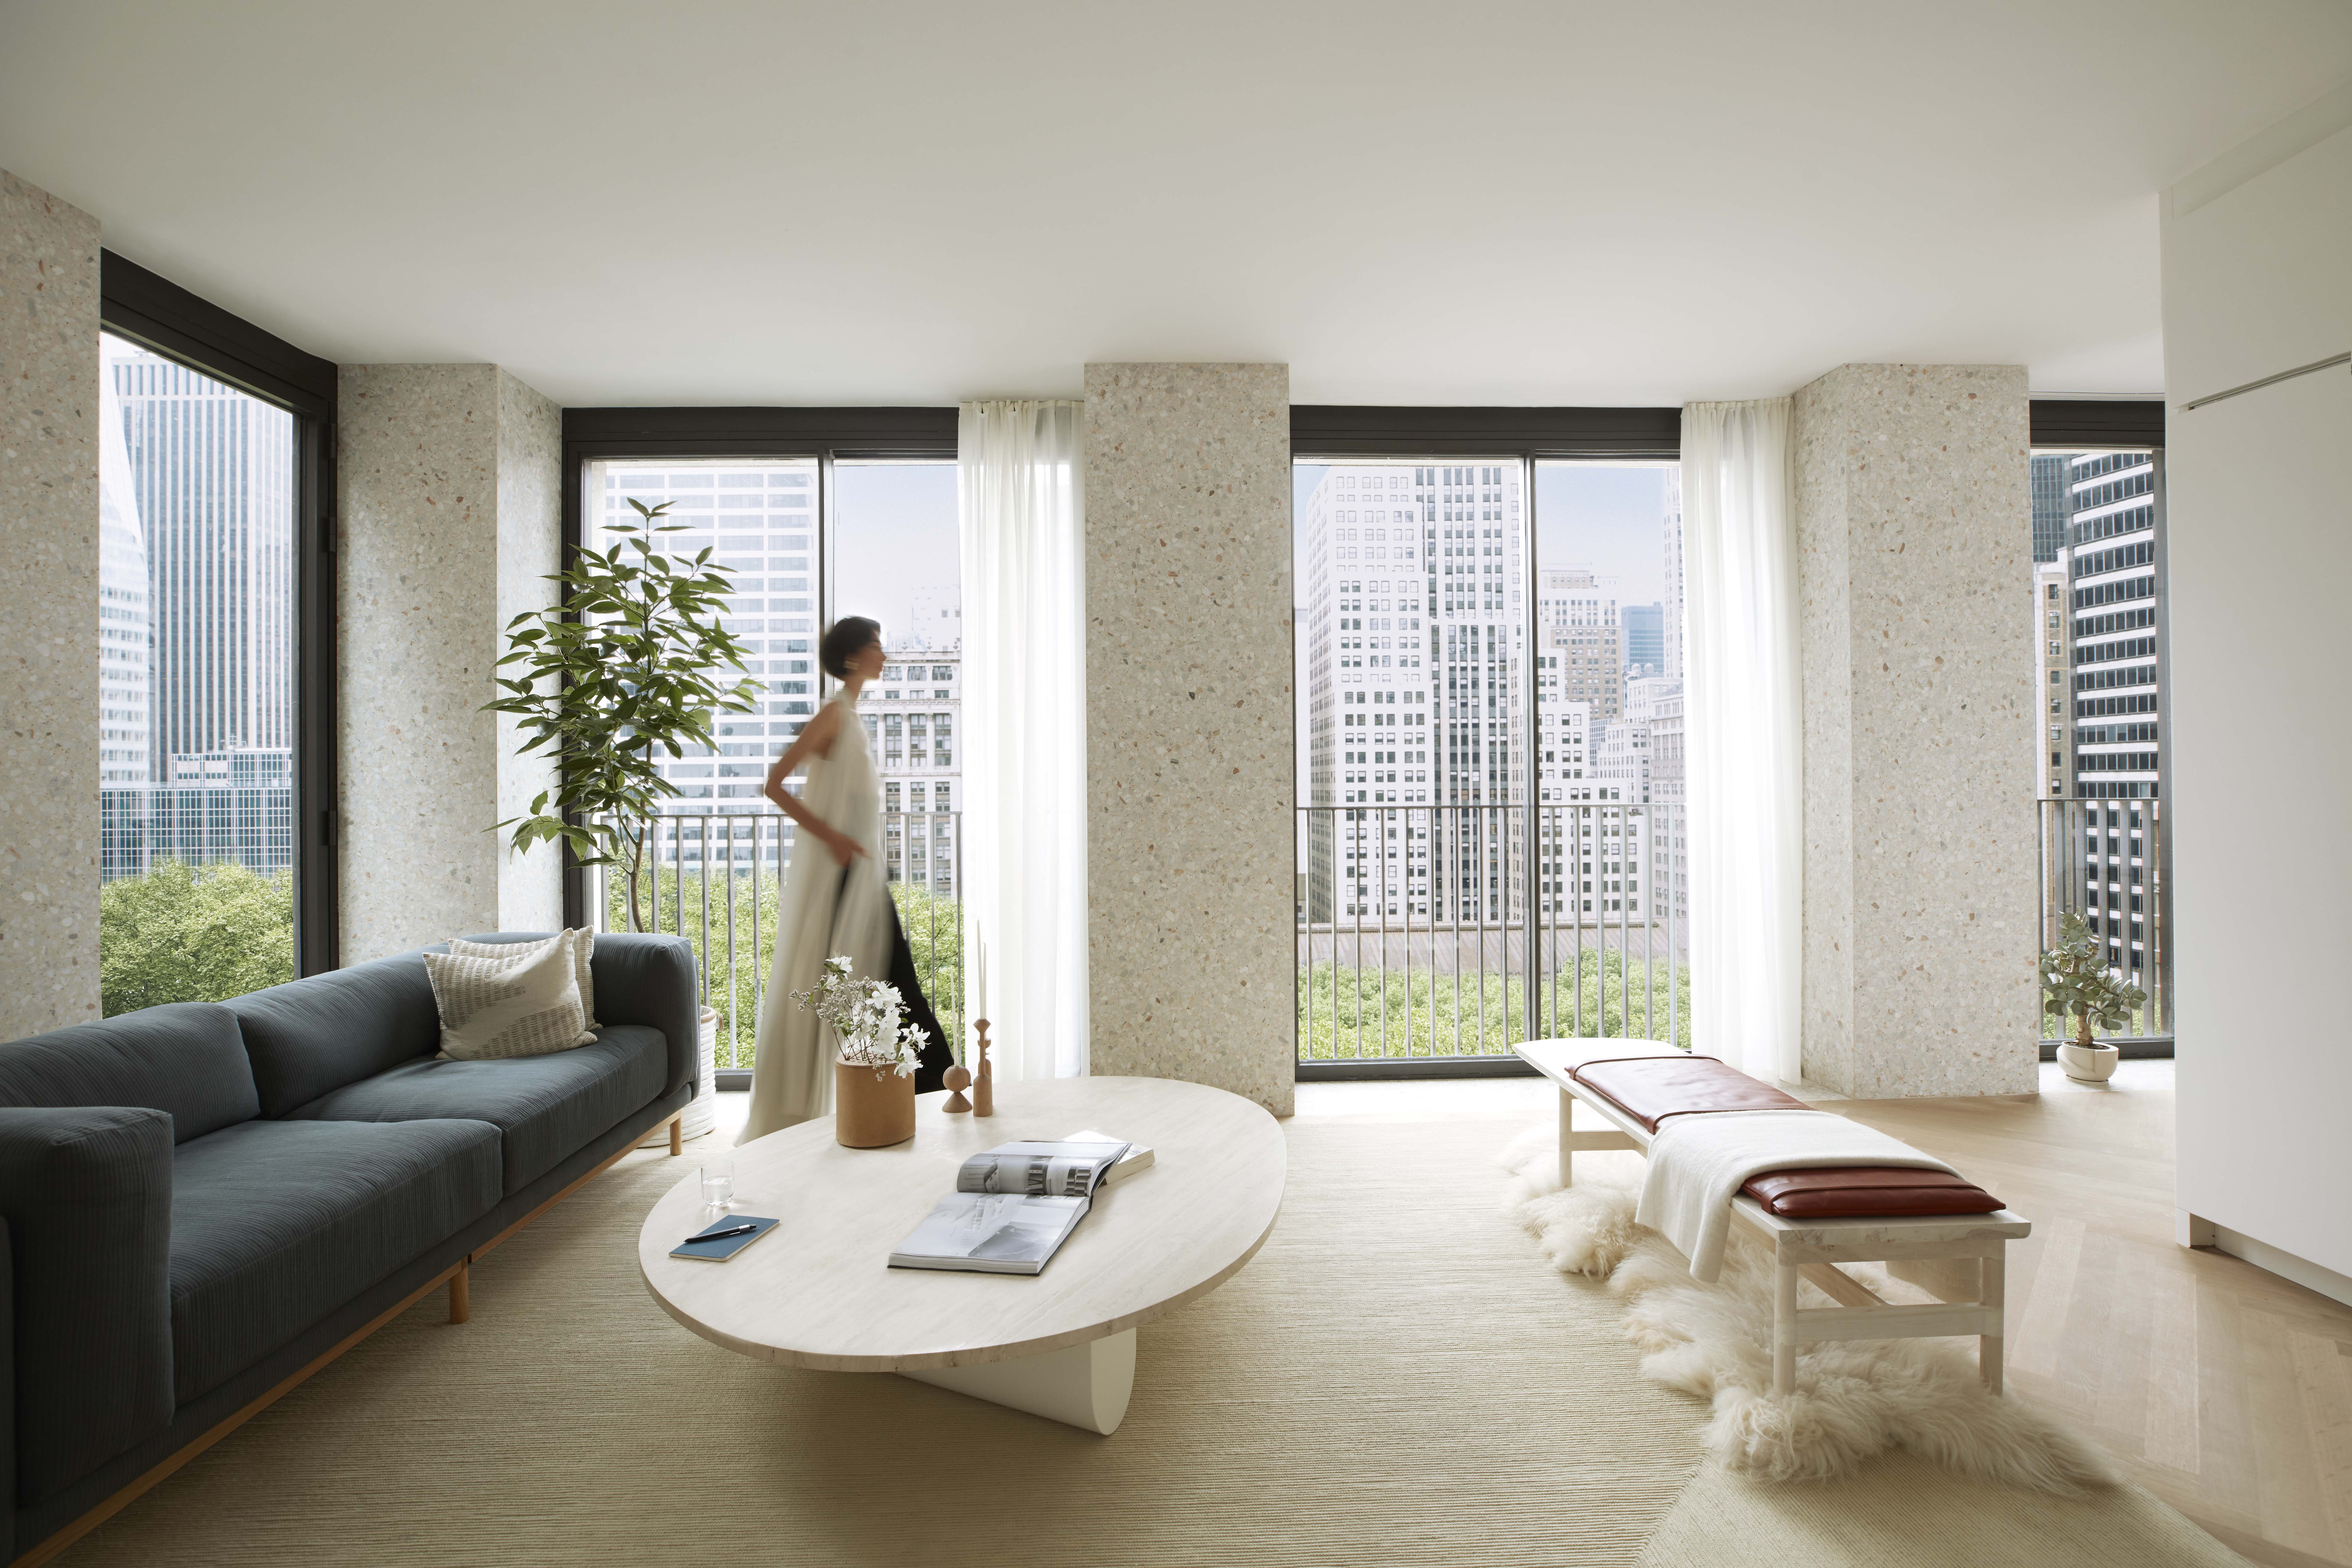 Living room at The Bryant condos in New York. Woman walking in front of the oversized windows overlooking Bryant Park.